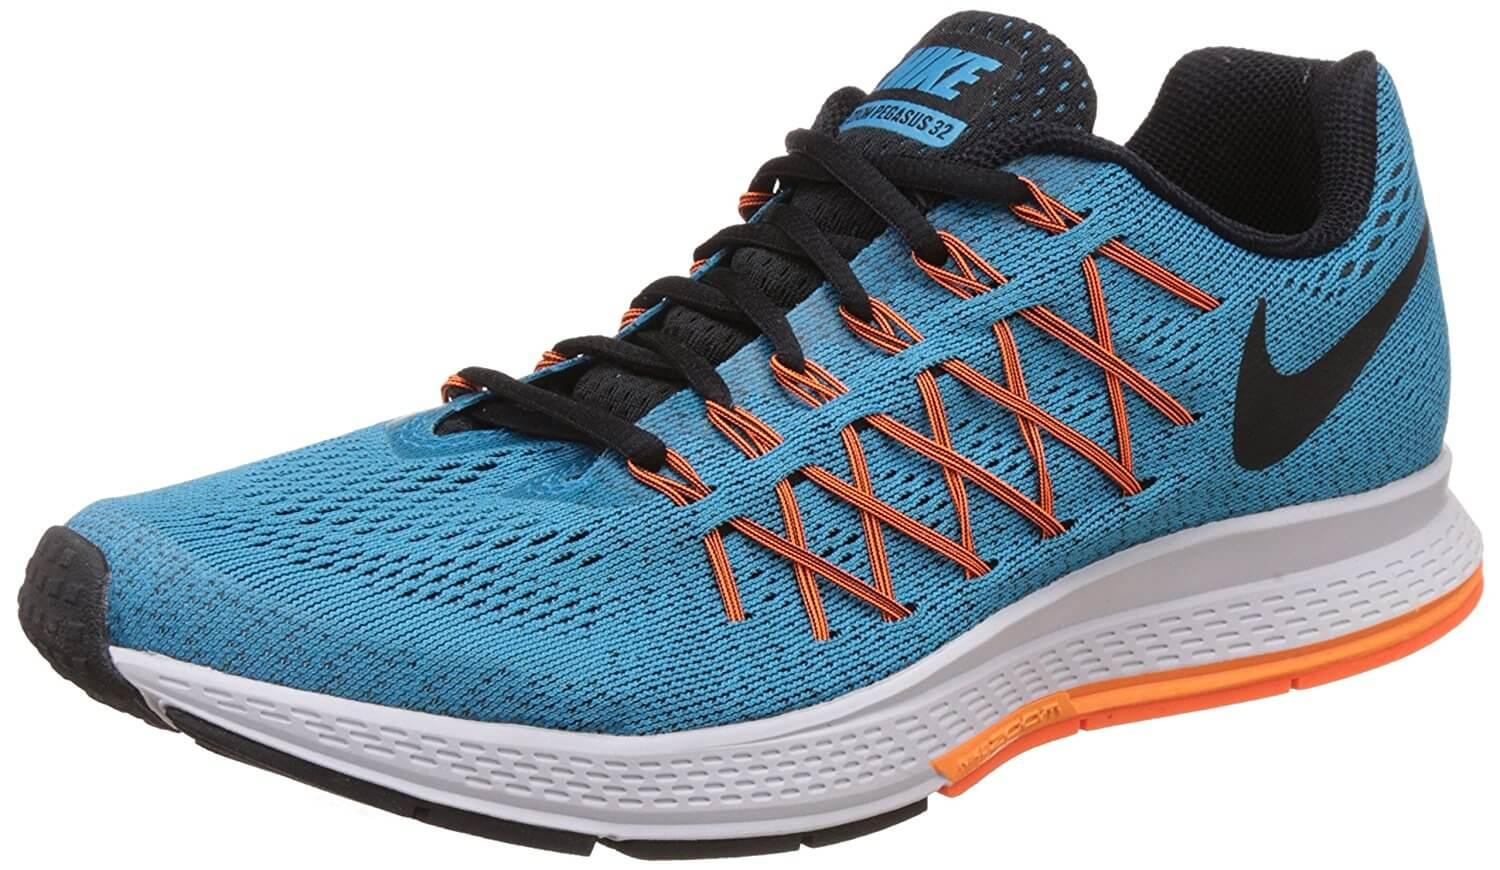 2f0615c94bce0 Nike Air Zoom Pegasus 32 - To Buy or Not in May 2019